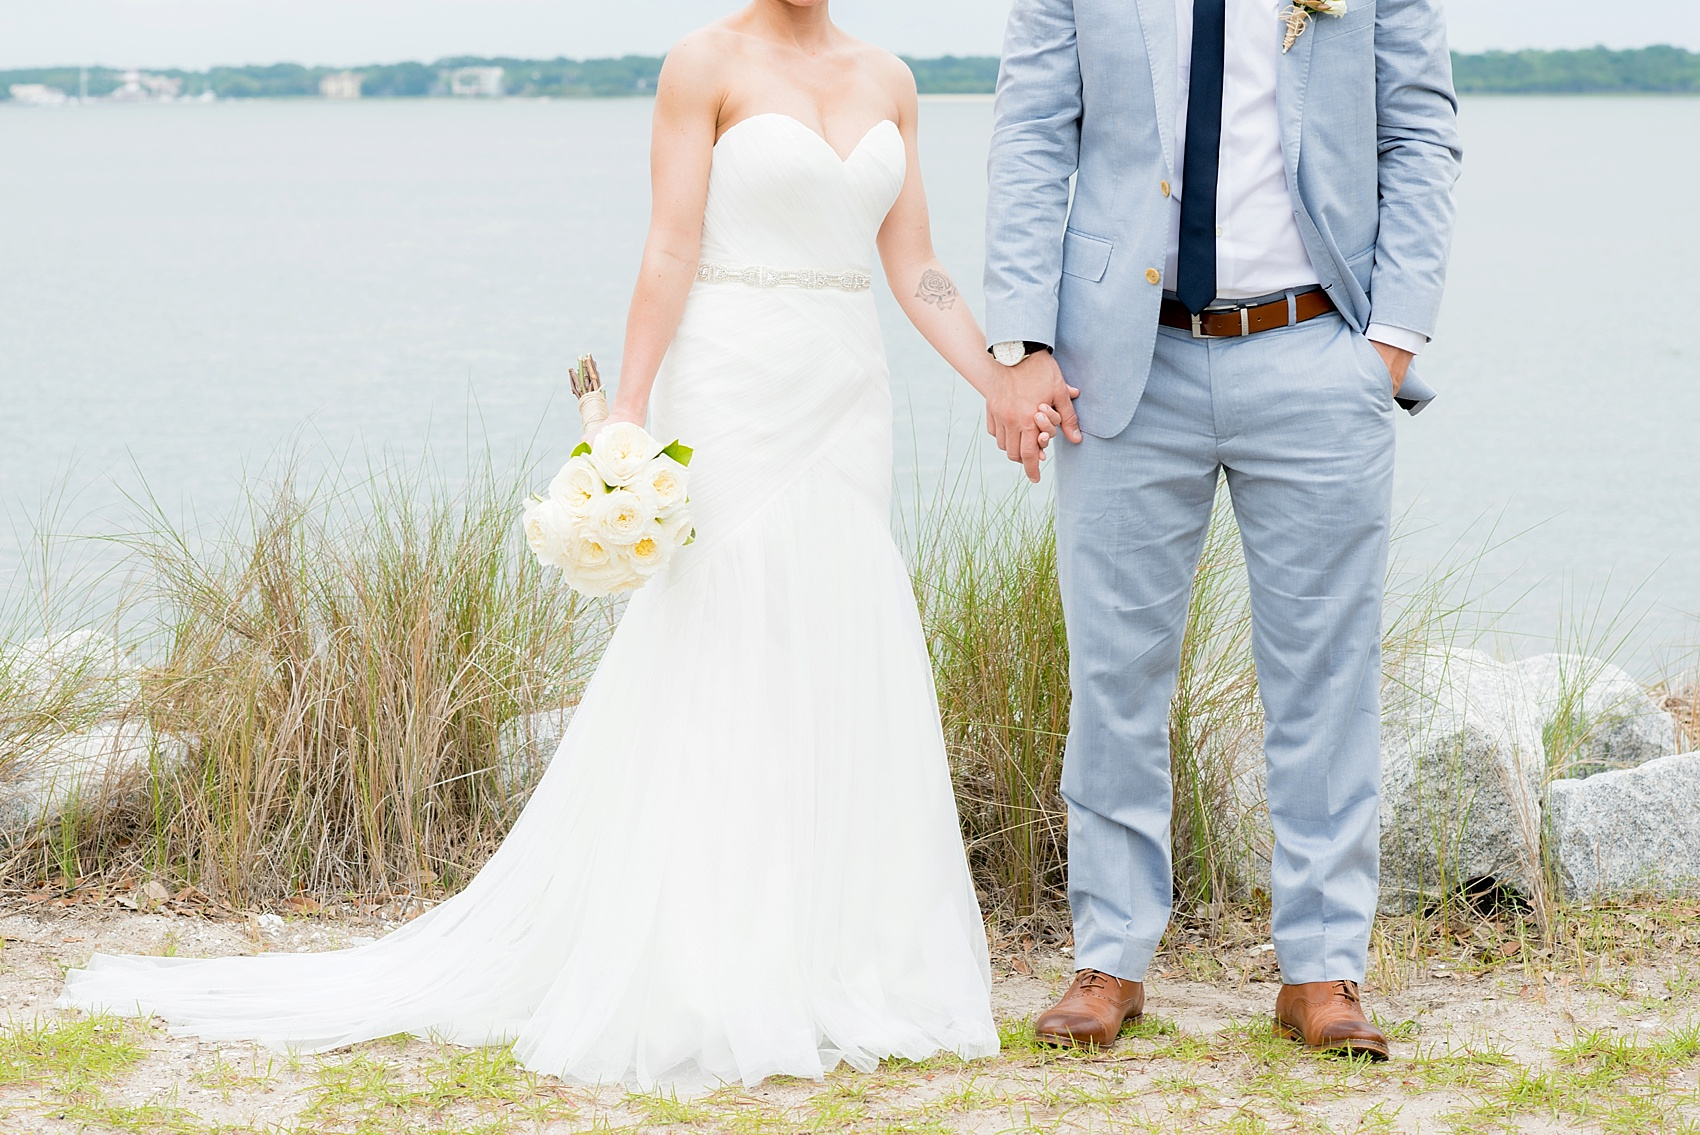 Bride and groom waterfront photos in Haig Point, South Carolina, off the coast of Hilton Head. Photos by Mikkel Paige Photography.